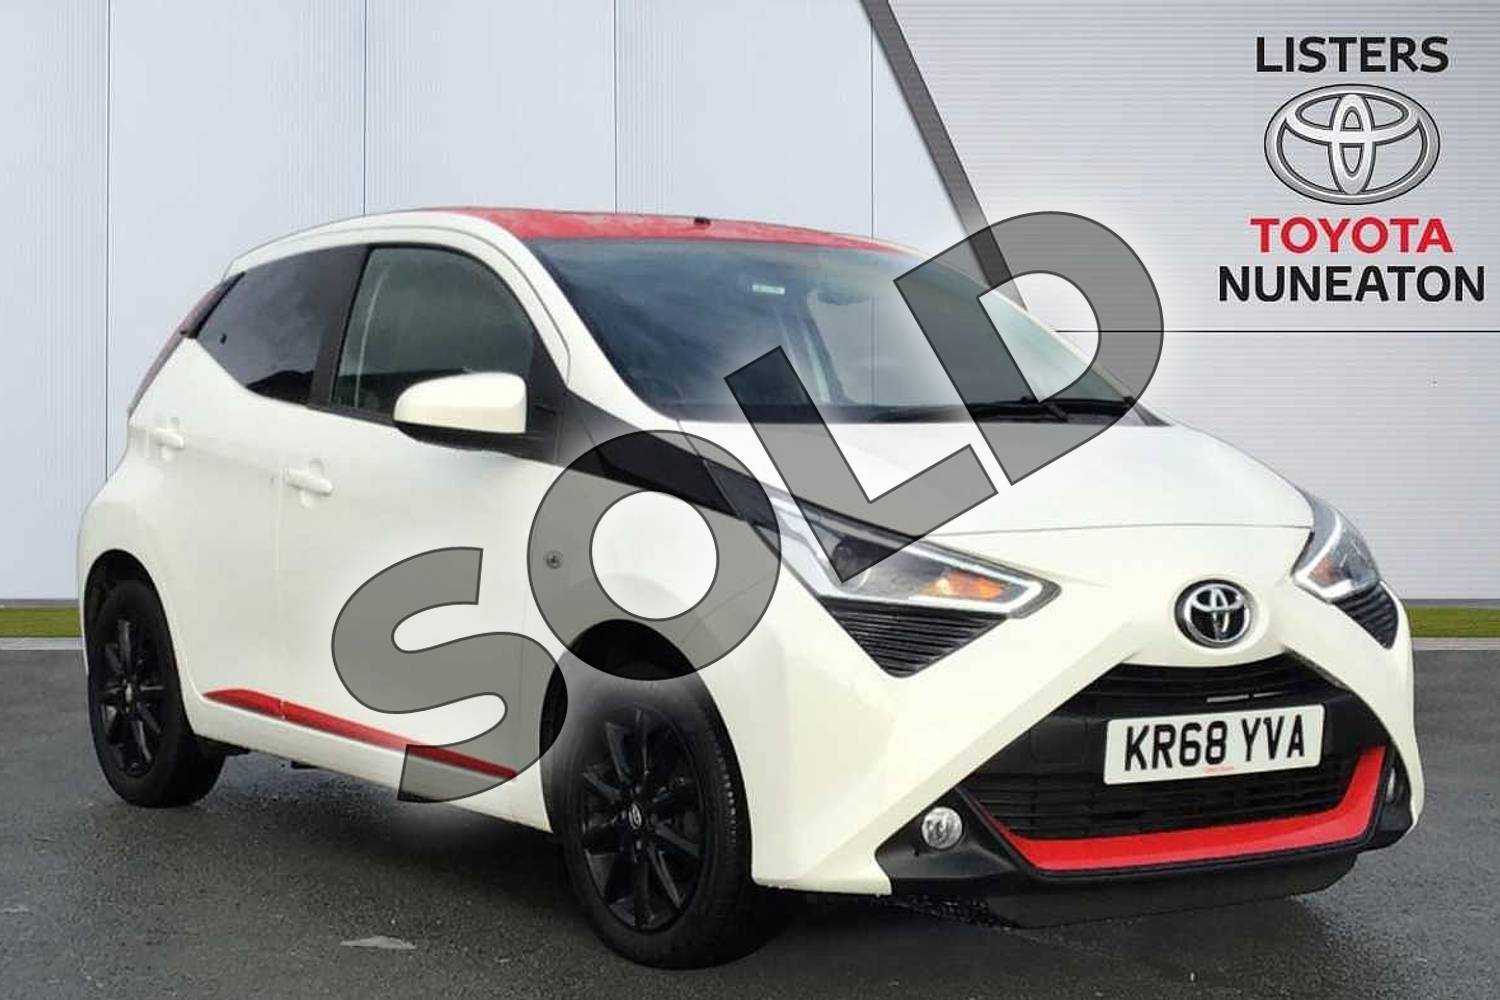 2018 Toyota Aygo Hatchback 1.0 VVT-i X-Press 5dr in White at Listers Toyota Nuneaton